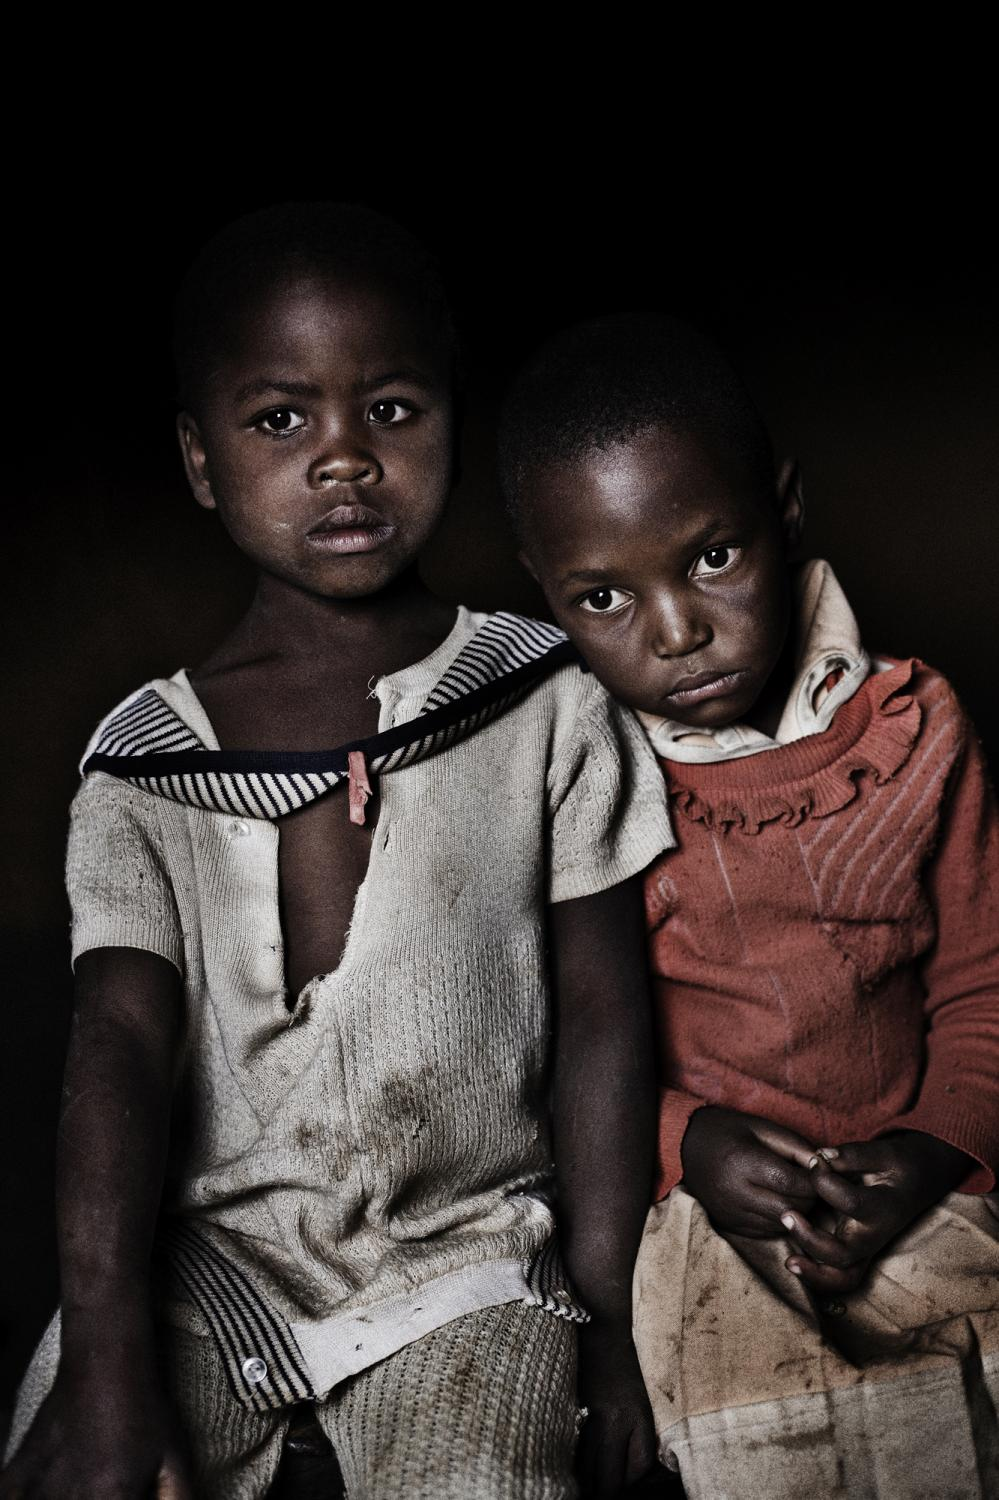 Lesotho. Portrait of Pulane Makhaleme and Hopolang Makhaleme, the two daughters of Matseliso Makhaleme who is suffering from multi-drug resistant tuberculosis (MDR-TB) and HIV, she is under ART treatment. Lesotho is a mountainous country located entirely within the borders of South Africa. It is home to more than 2 million people and has one of the highest HIV burdens in the world, with between 23 and 30% of the population estimated to be infected with the disease (UNAIDS 2004). Lesotho is also burdened by a high rate of TB, with an incidence of 465 per 100,000 population reported in 2005 (10,363 cases), making it the country with the fourth highest incidence in the world. Lesotho is likely in the midst of a public health disaster, where a drug-resistant TB epidemic and HIV epidemic are colliding, one fueling the other. An estimated 950 new MDR-TB patients will be diagnosed every year in Lesotho.